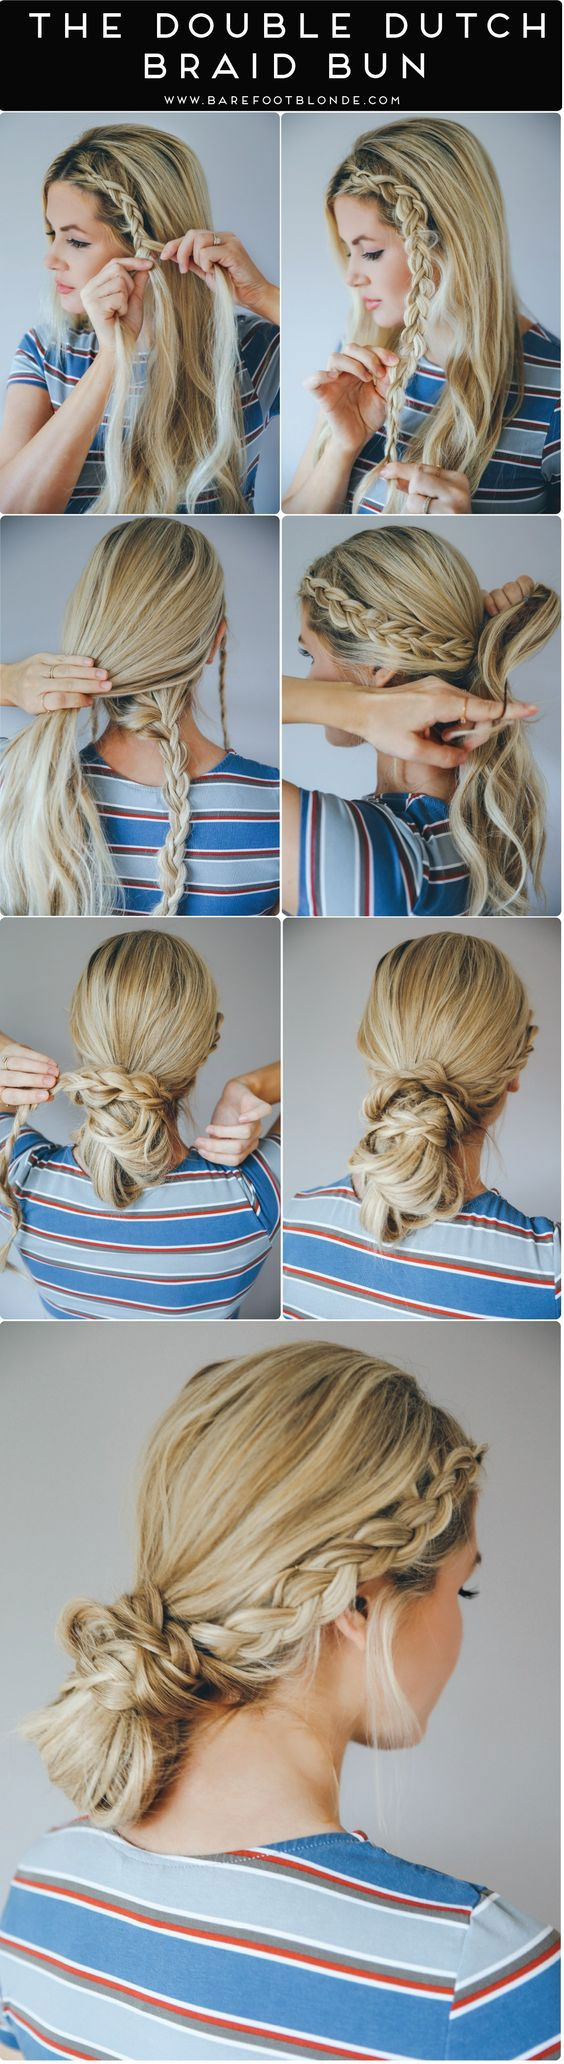 9 Creative Dutch Braid Tutorials You Need To Try This Summer ...